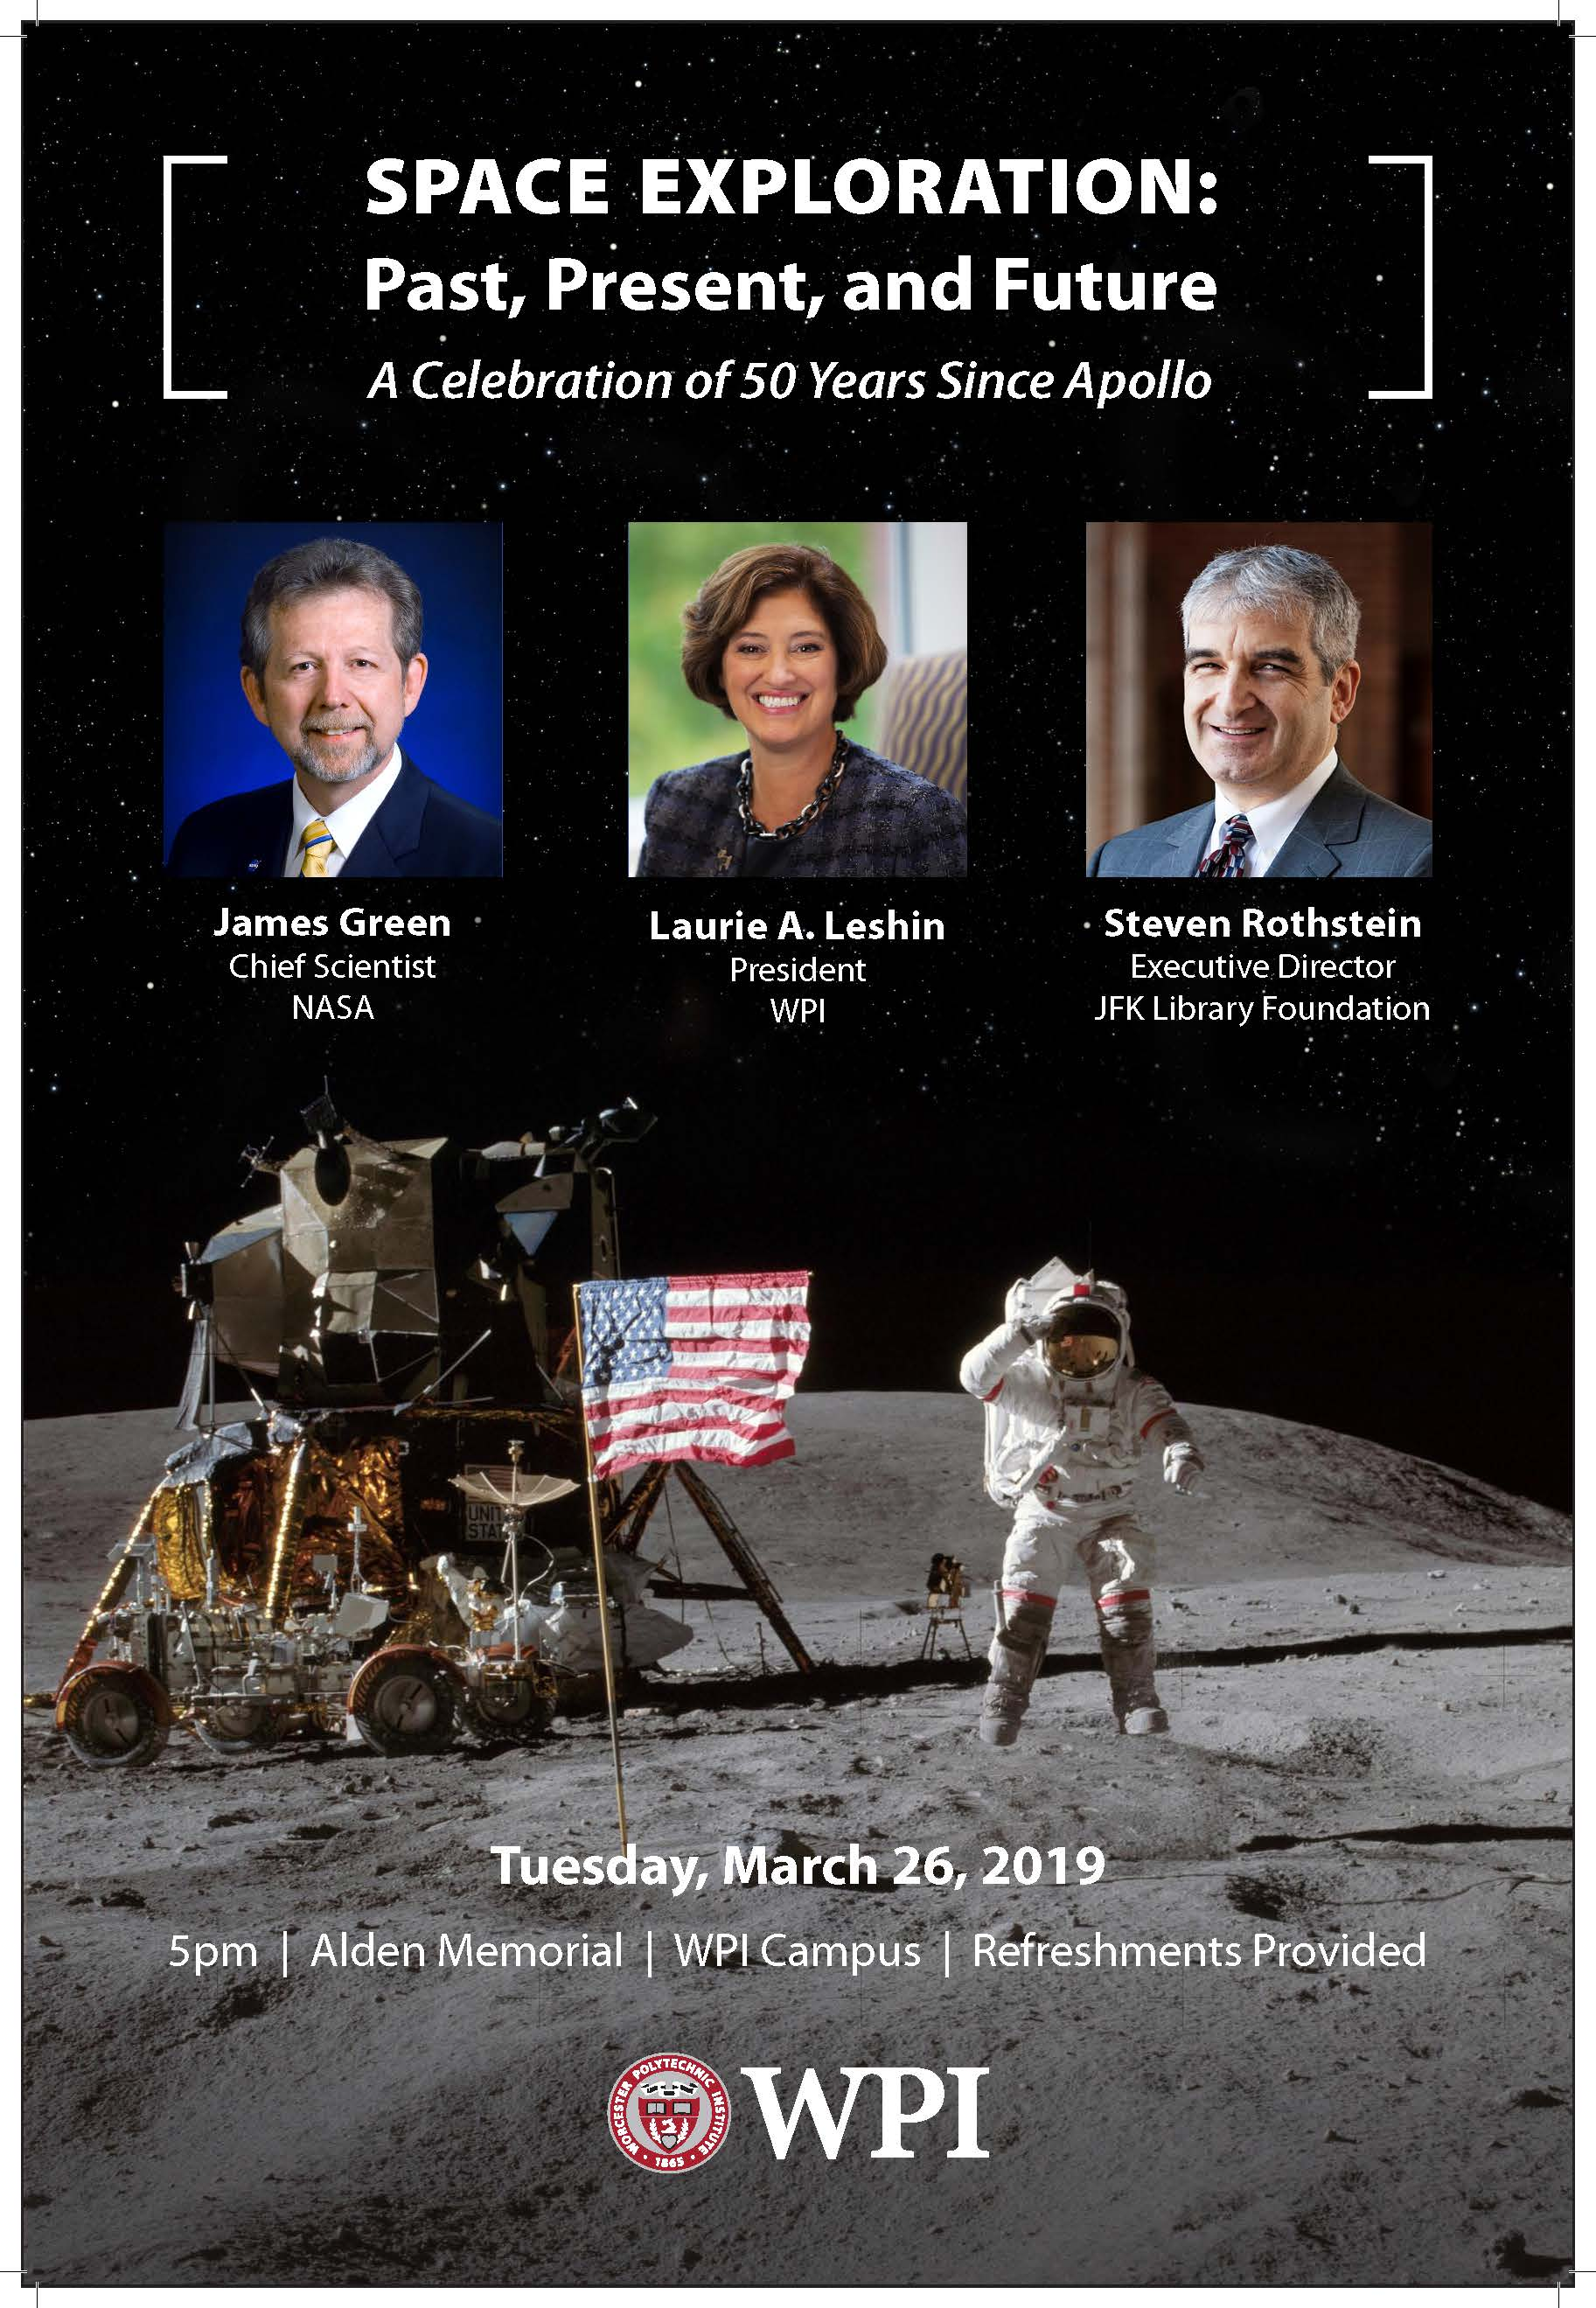 WPI Space Exploration Event 50 Years Since Apollo